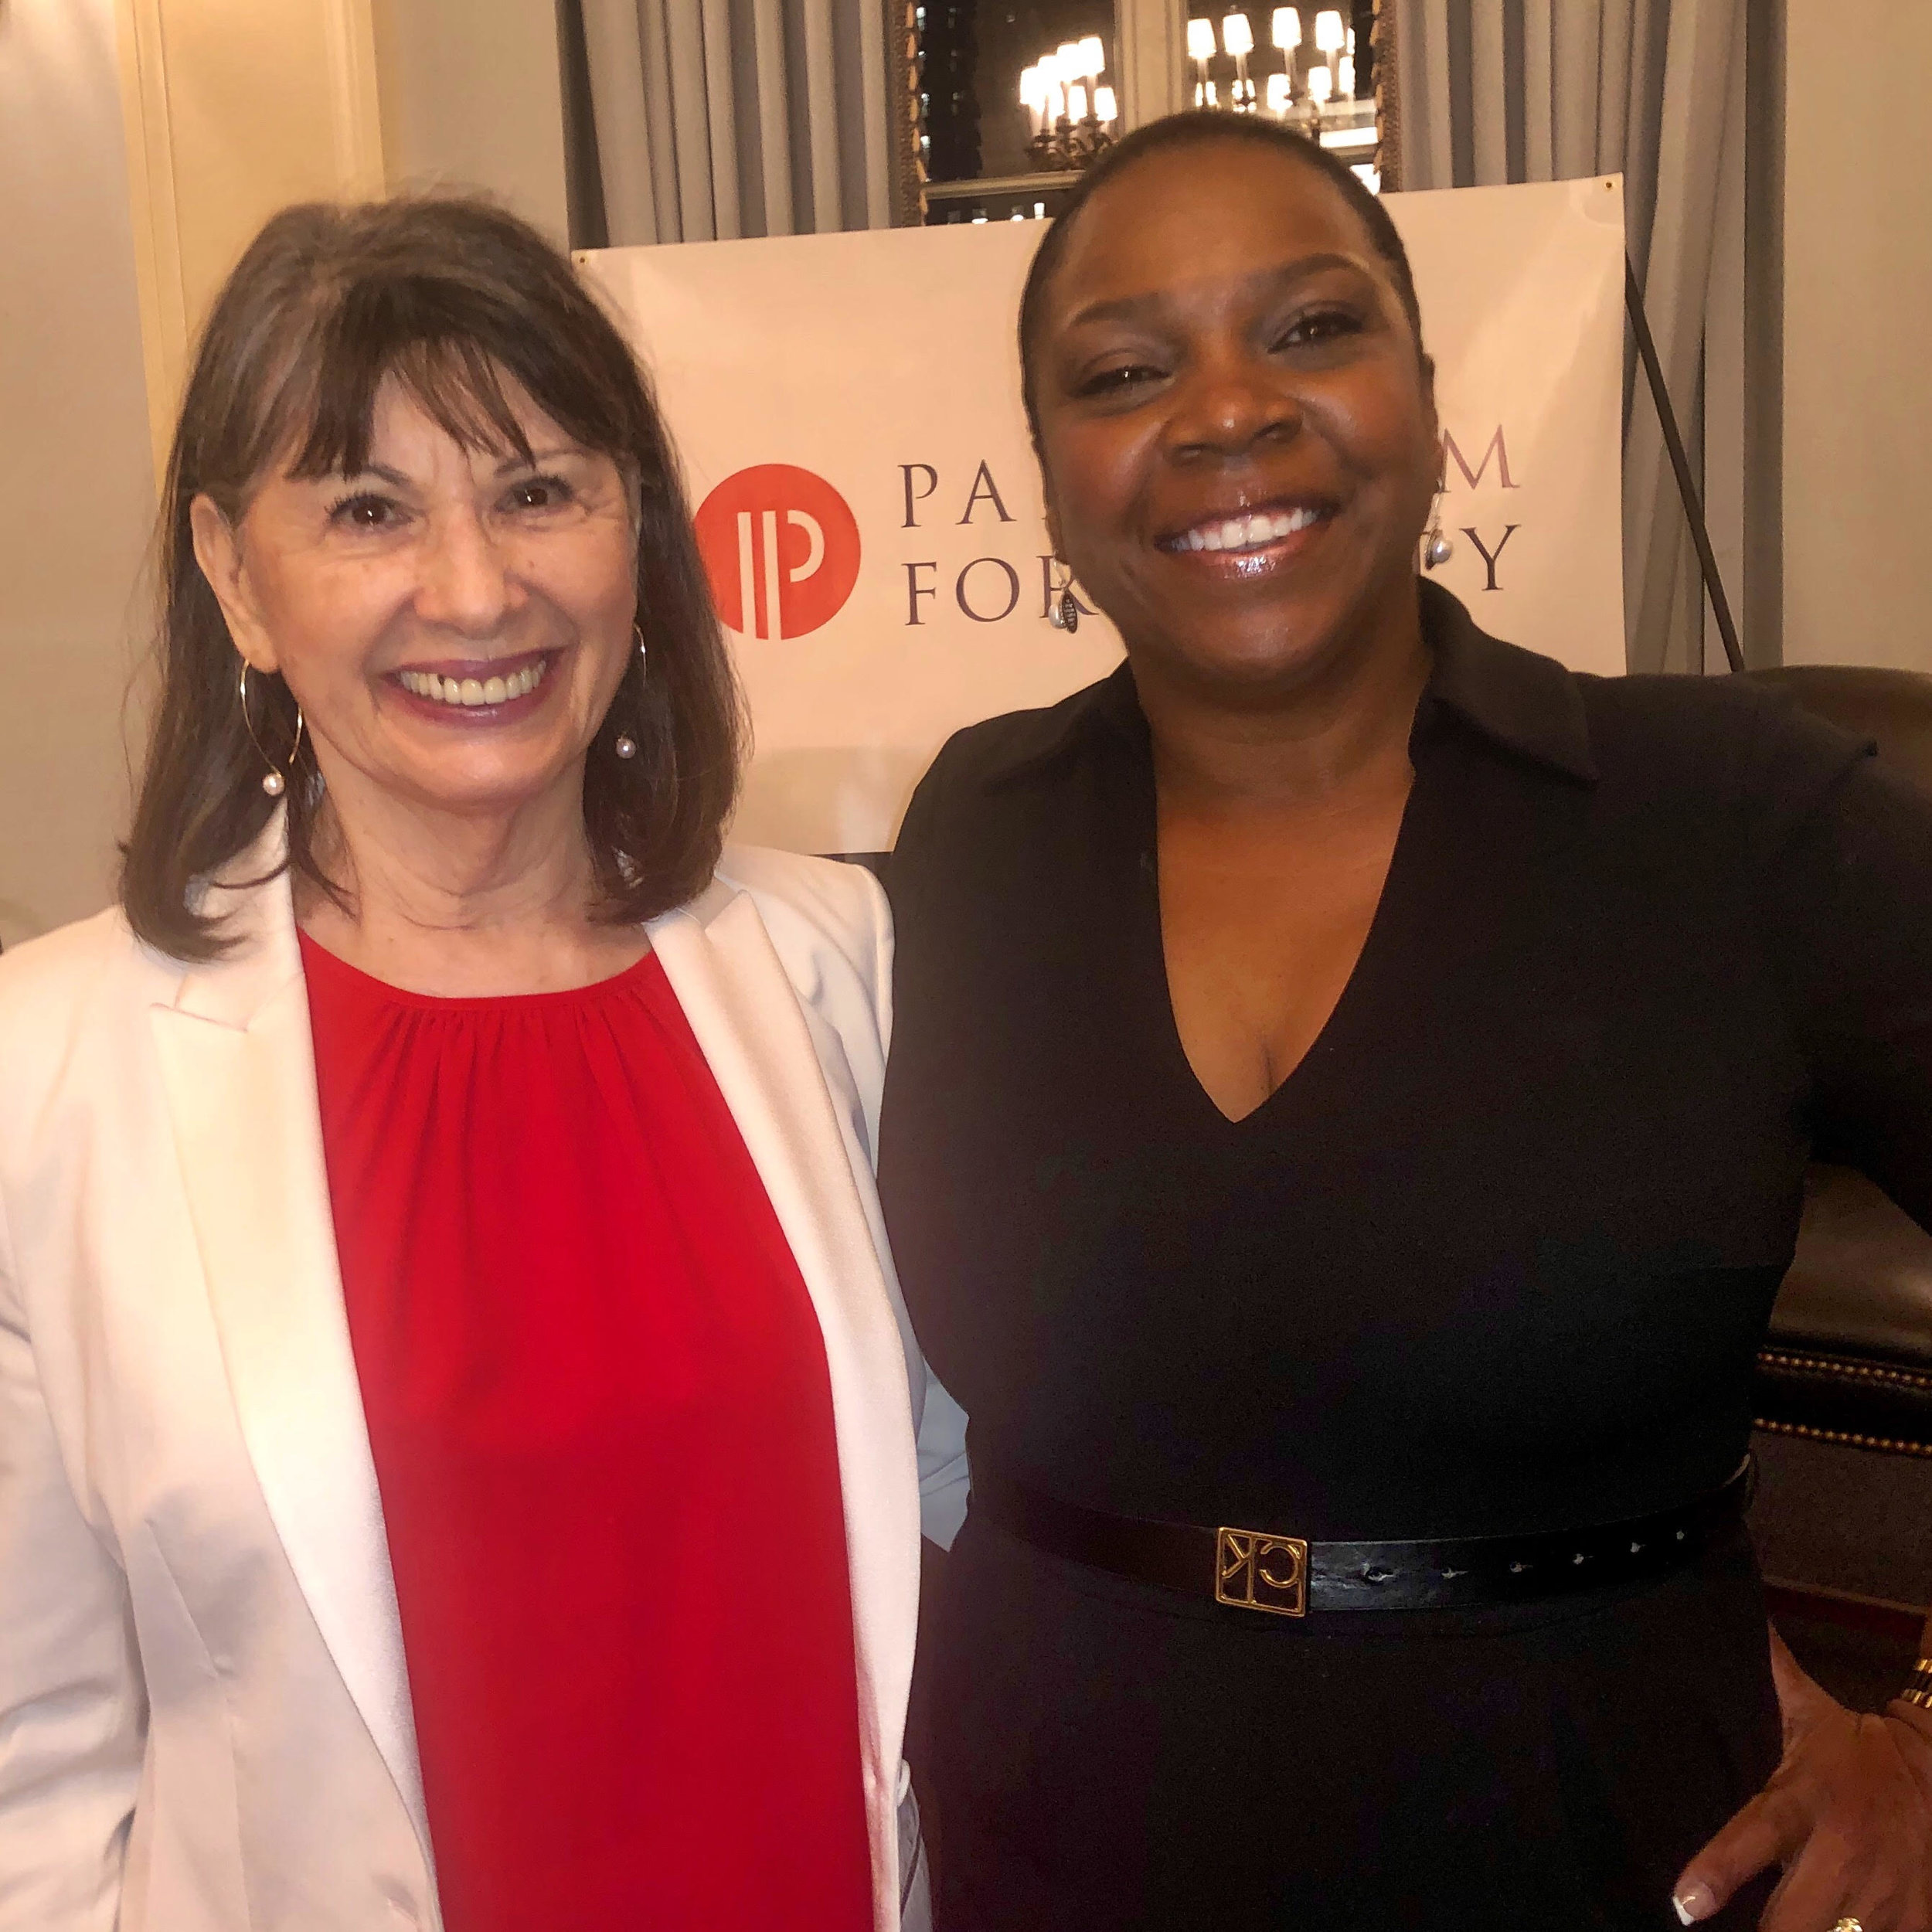 With Sheila Robinson, founder and president of Diversity Woman Media (and a Take The Lead board member) at  Paradigm for Parity.